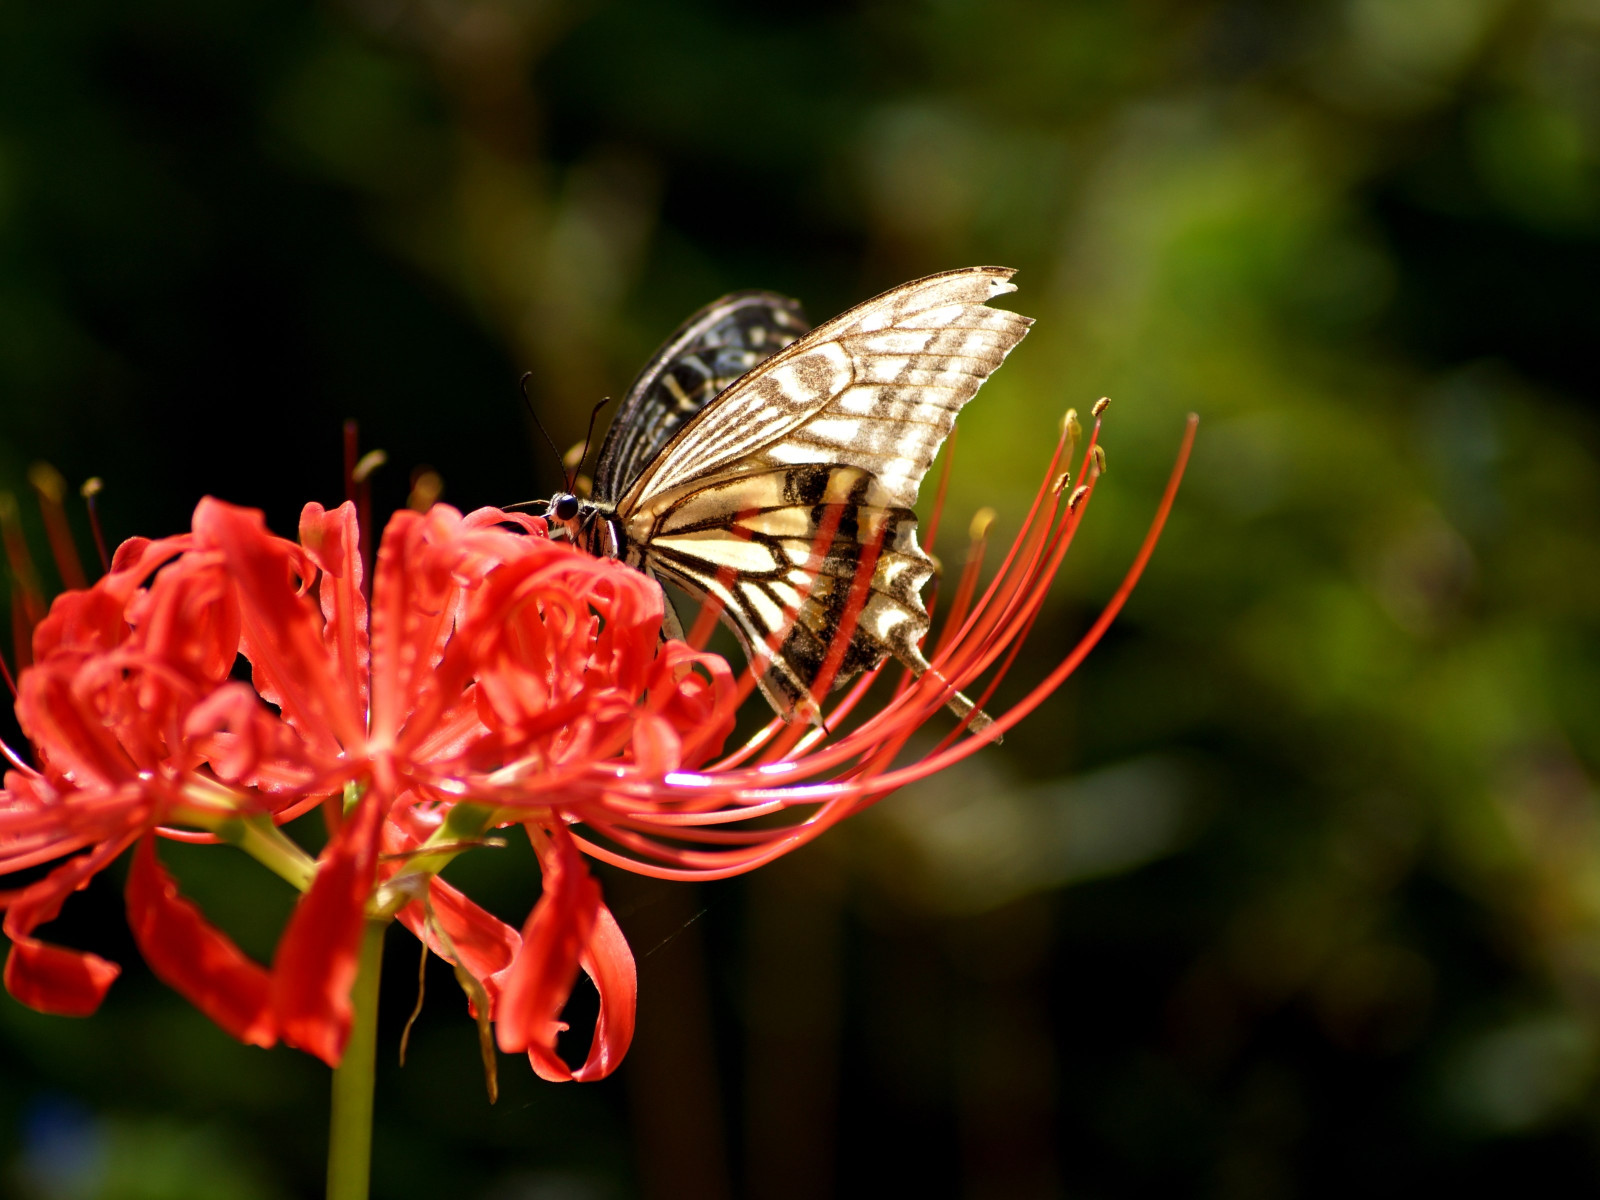 Butterfly on Lycoris Radiata flower | 1600x1200 wallpaper